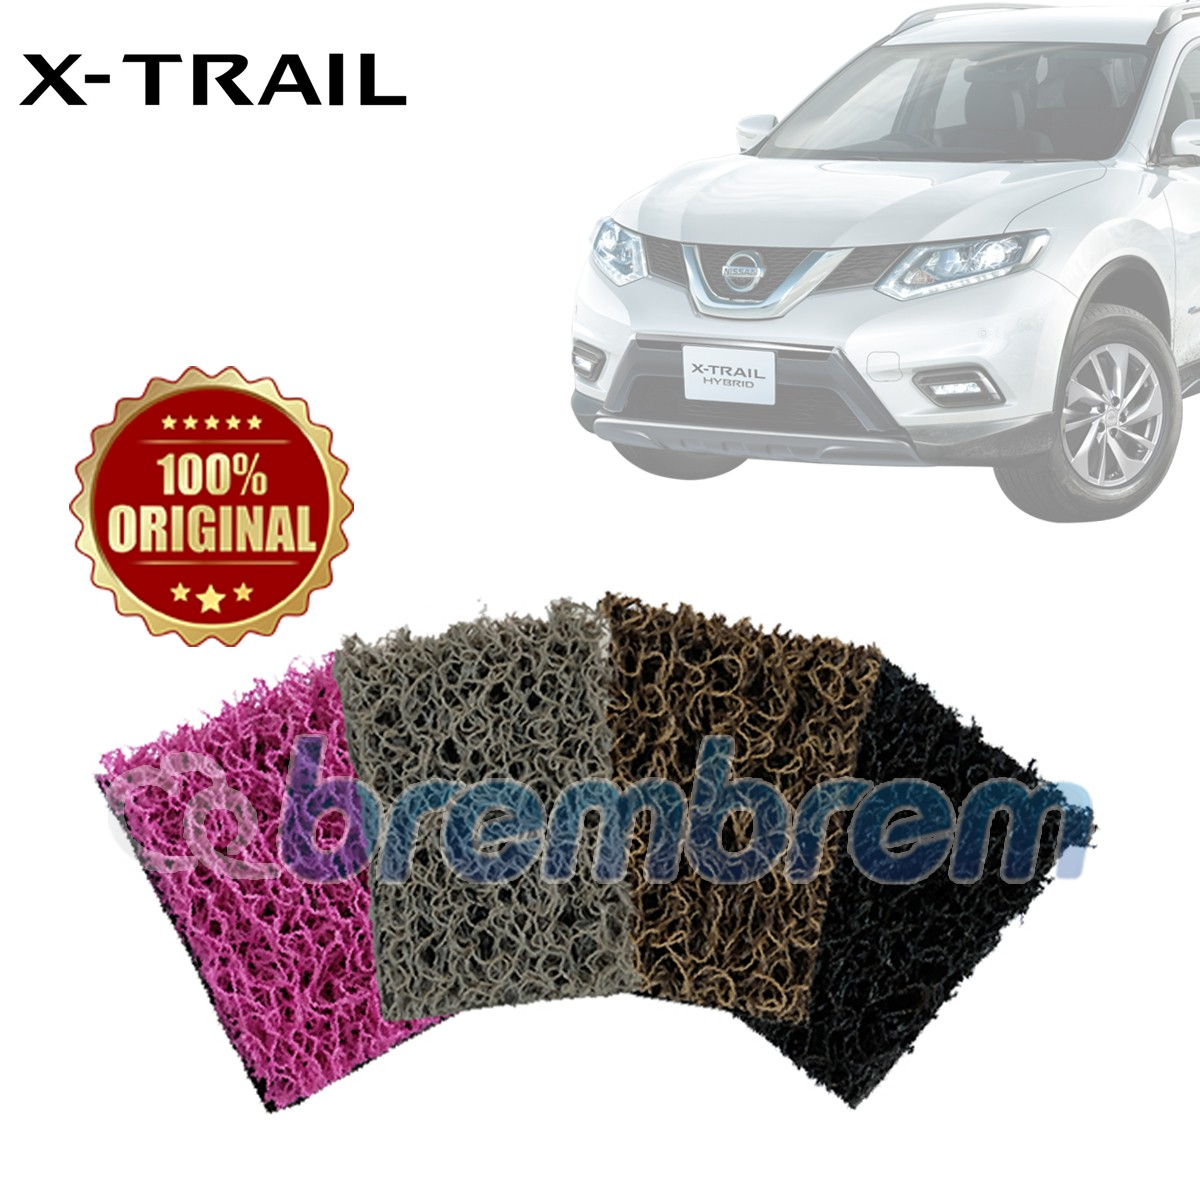 KARPET COMFORT DELUXE + BAGASI NISSAN ALL NEW X-TRAIL